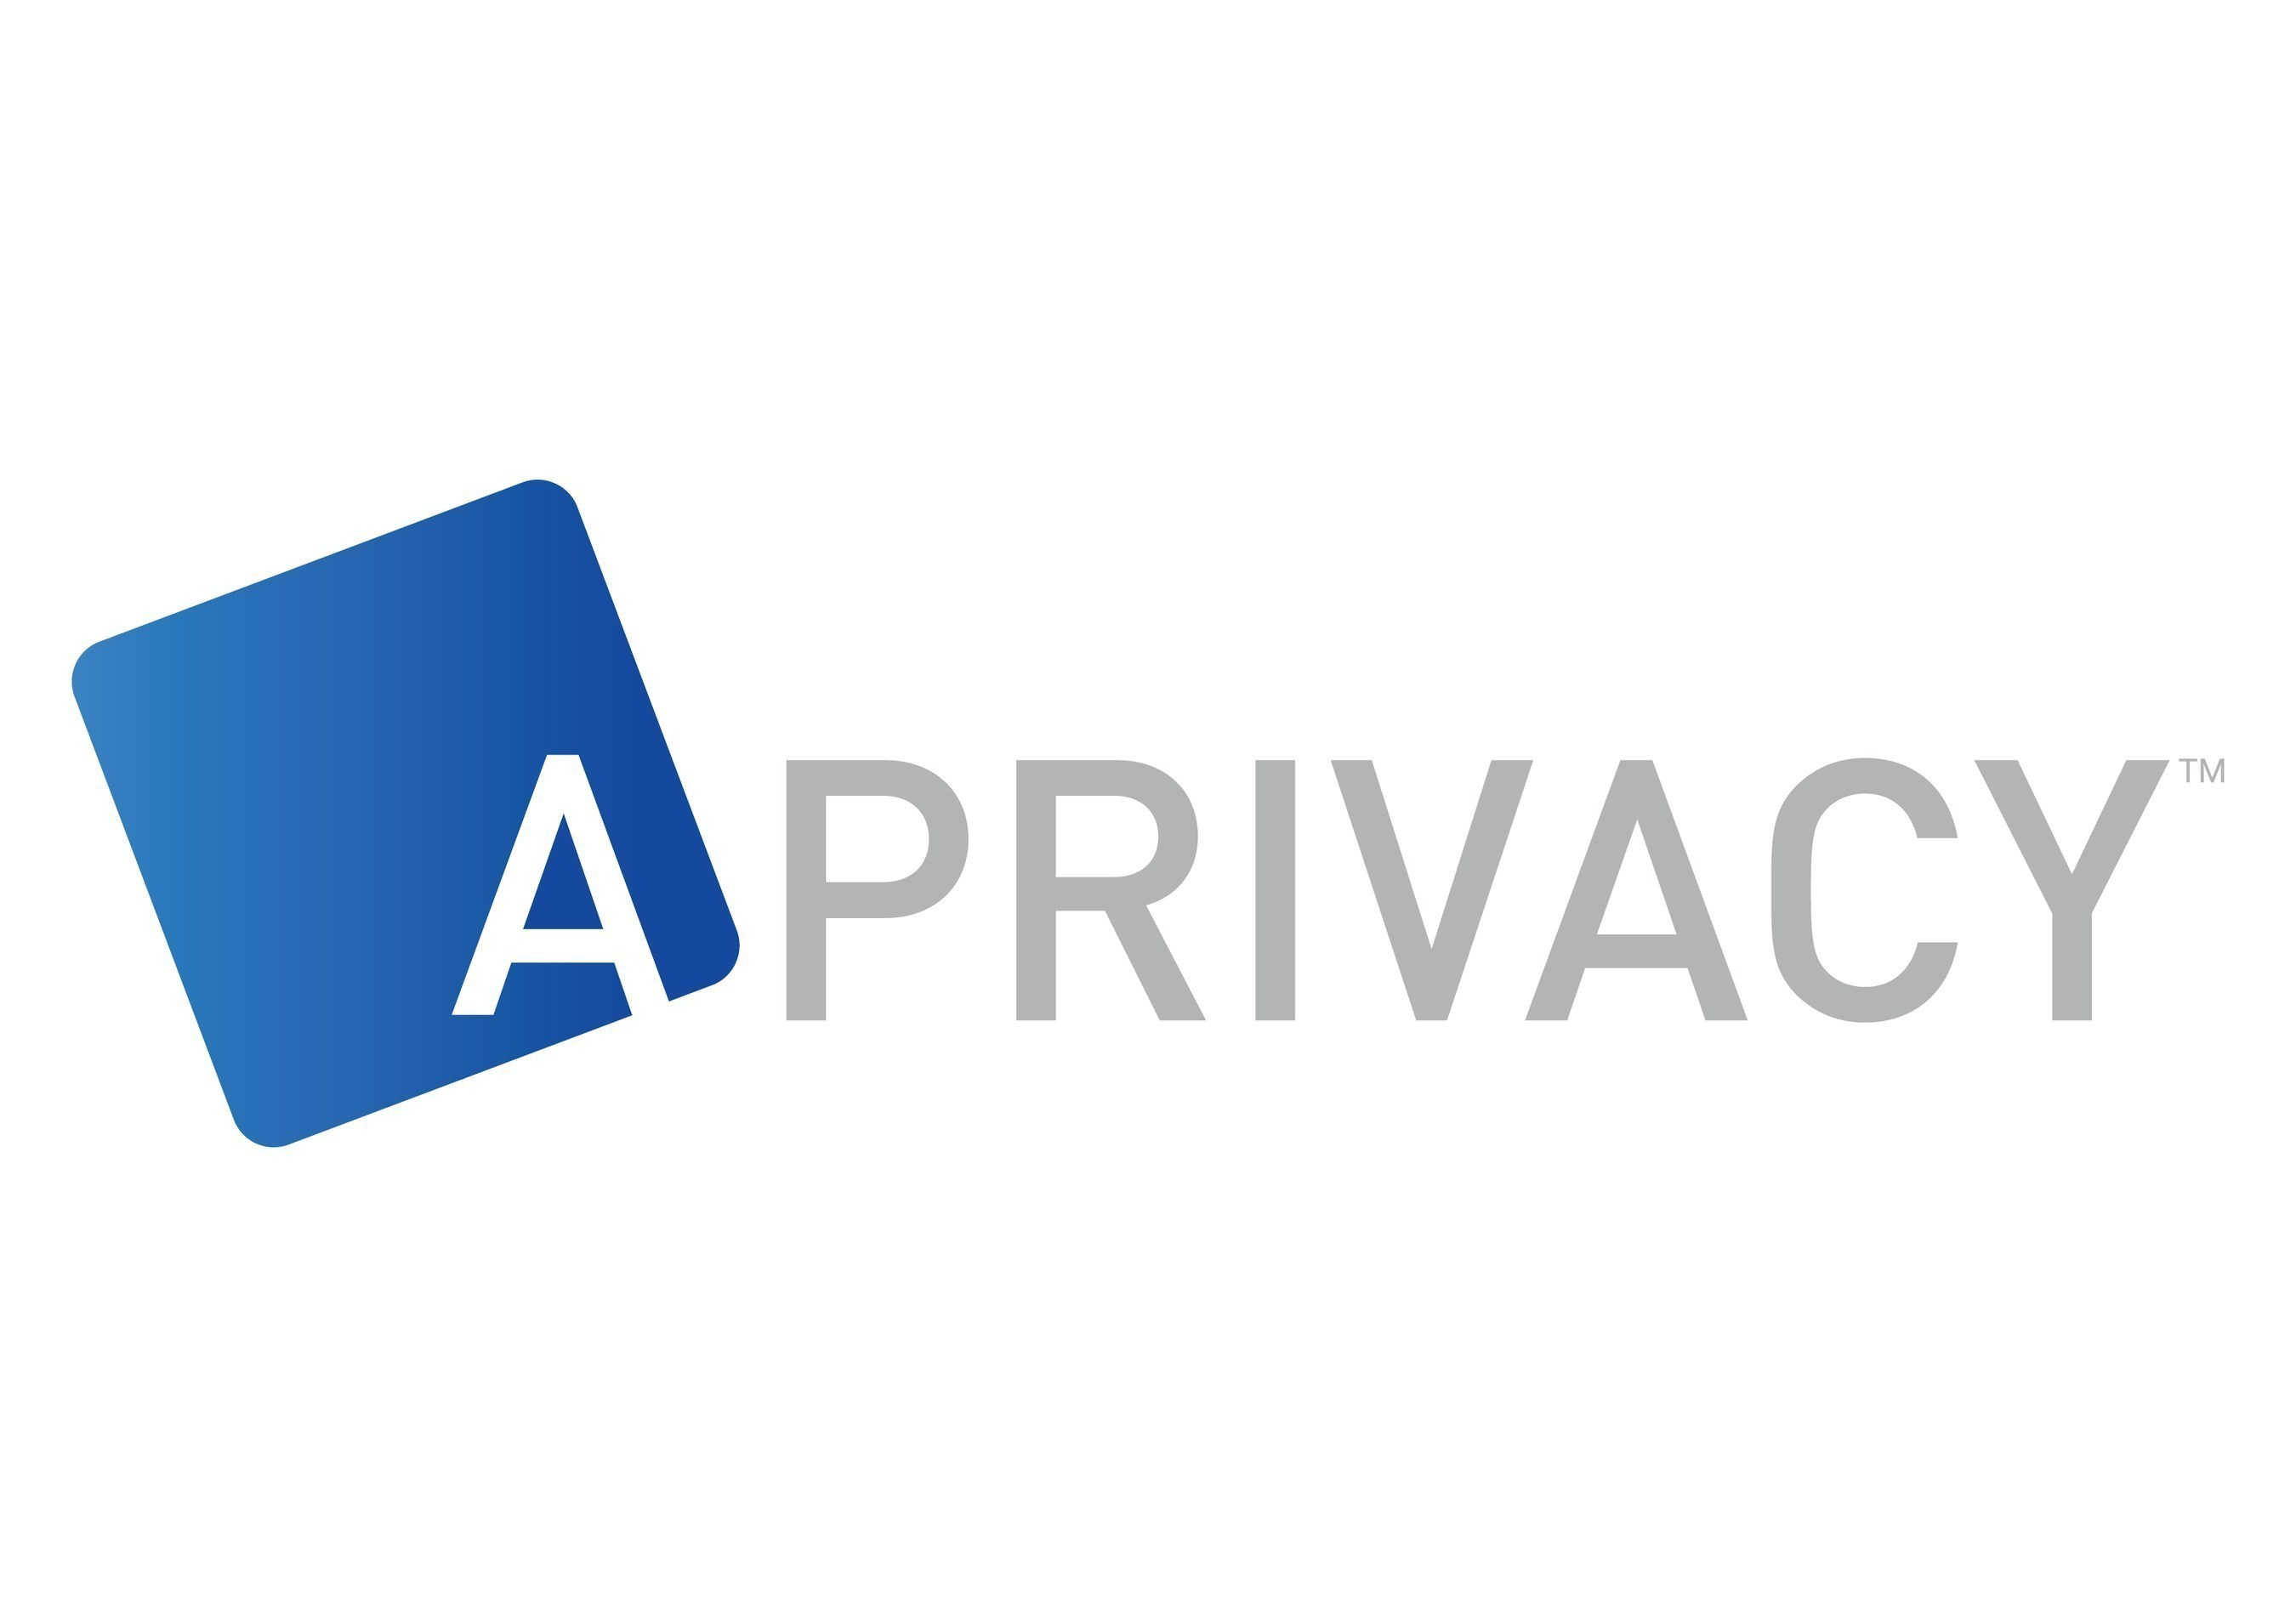 Secure Messaging by APrivacy